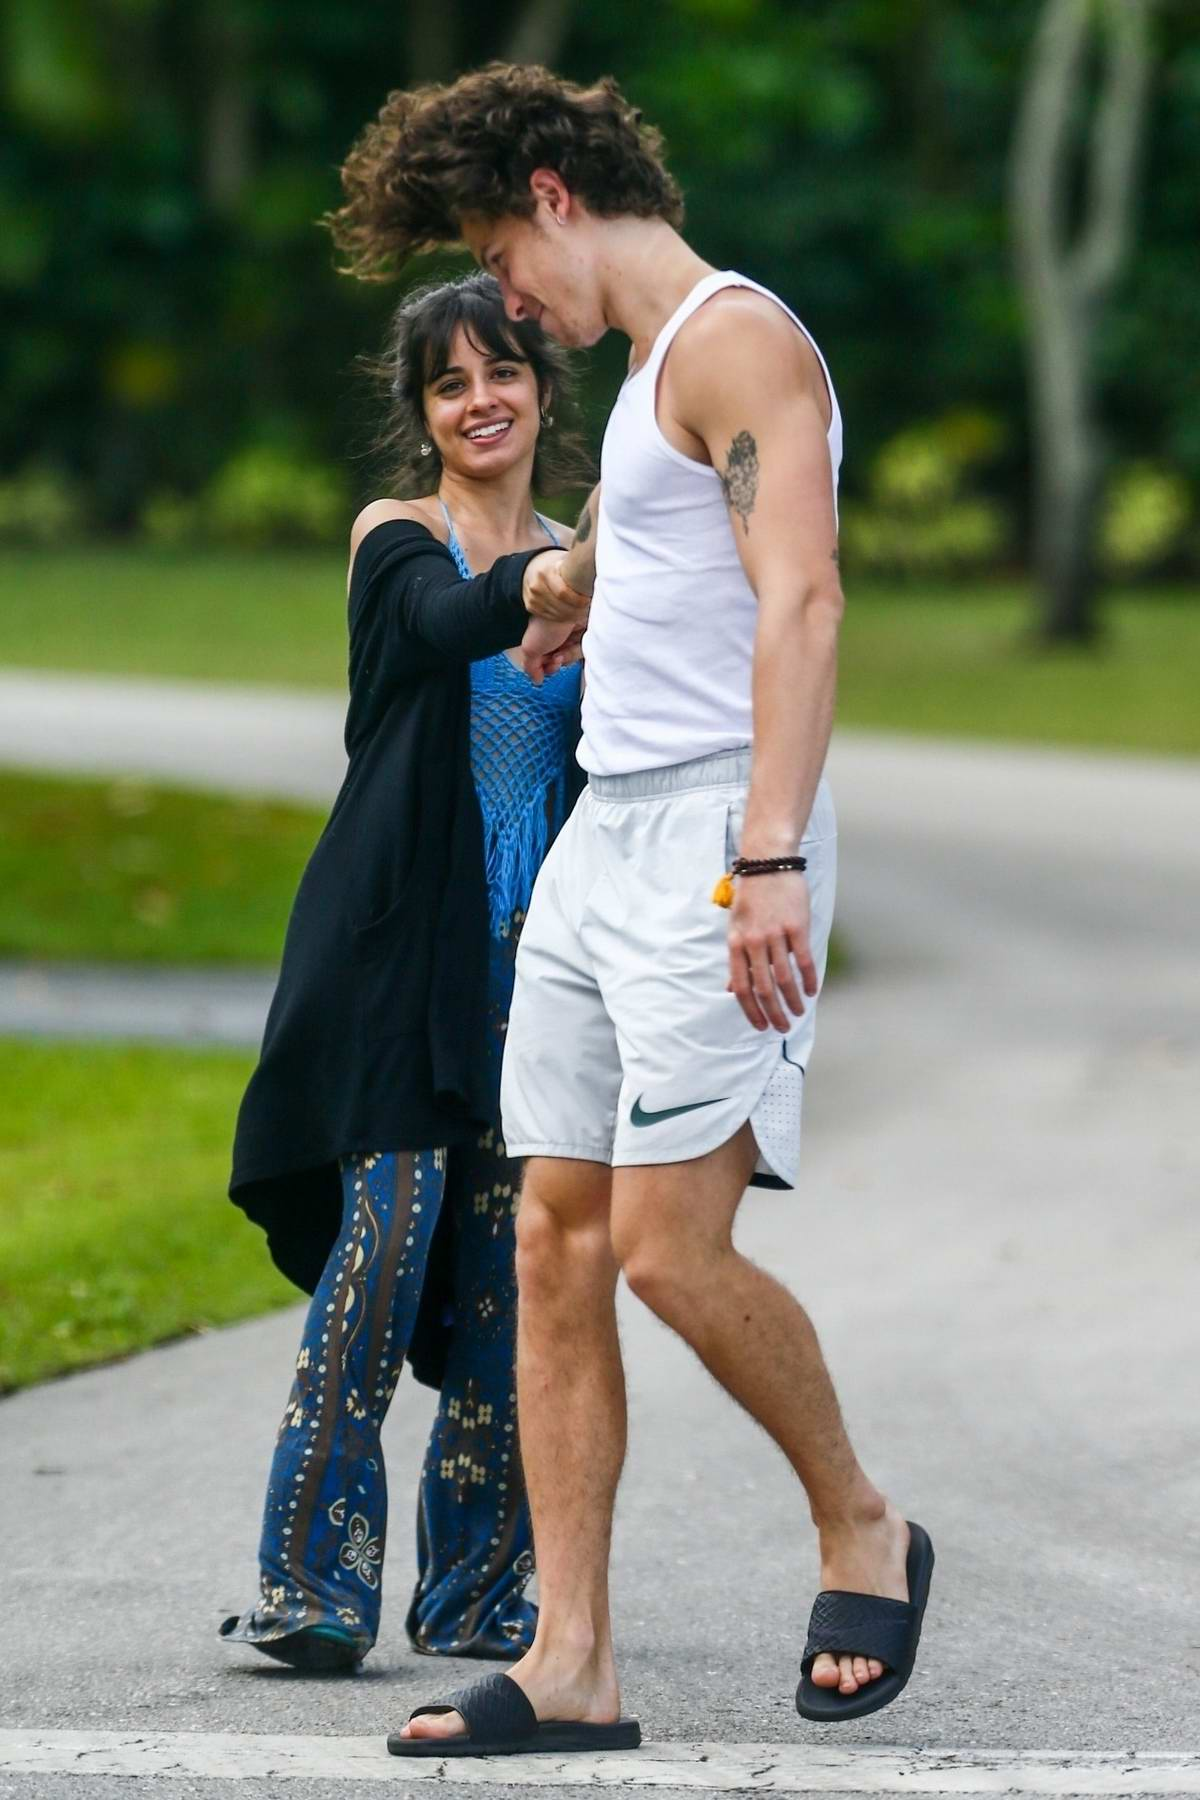 Camila Cabello and Shawn Mendes are all smiles while out for their morning walk in Coral Gables, Florida